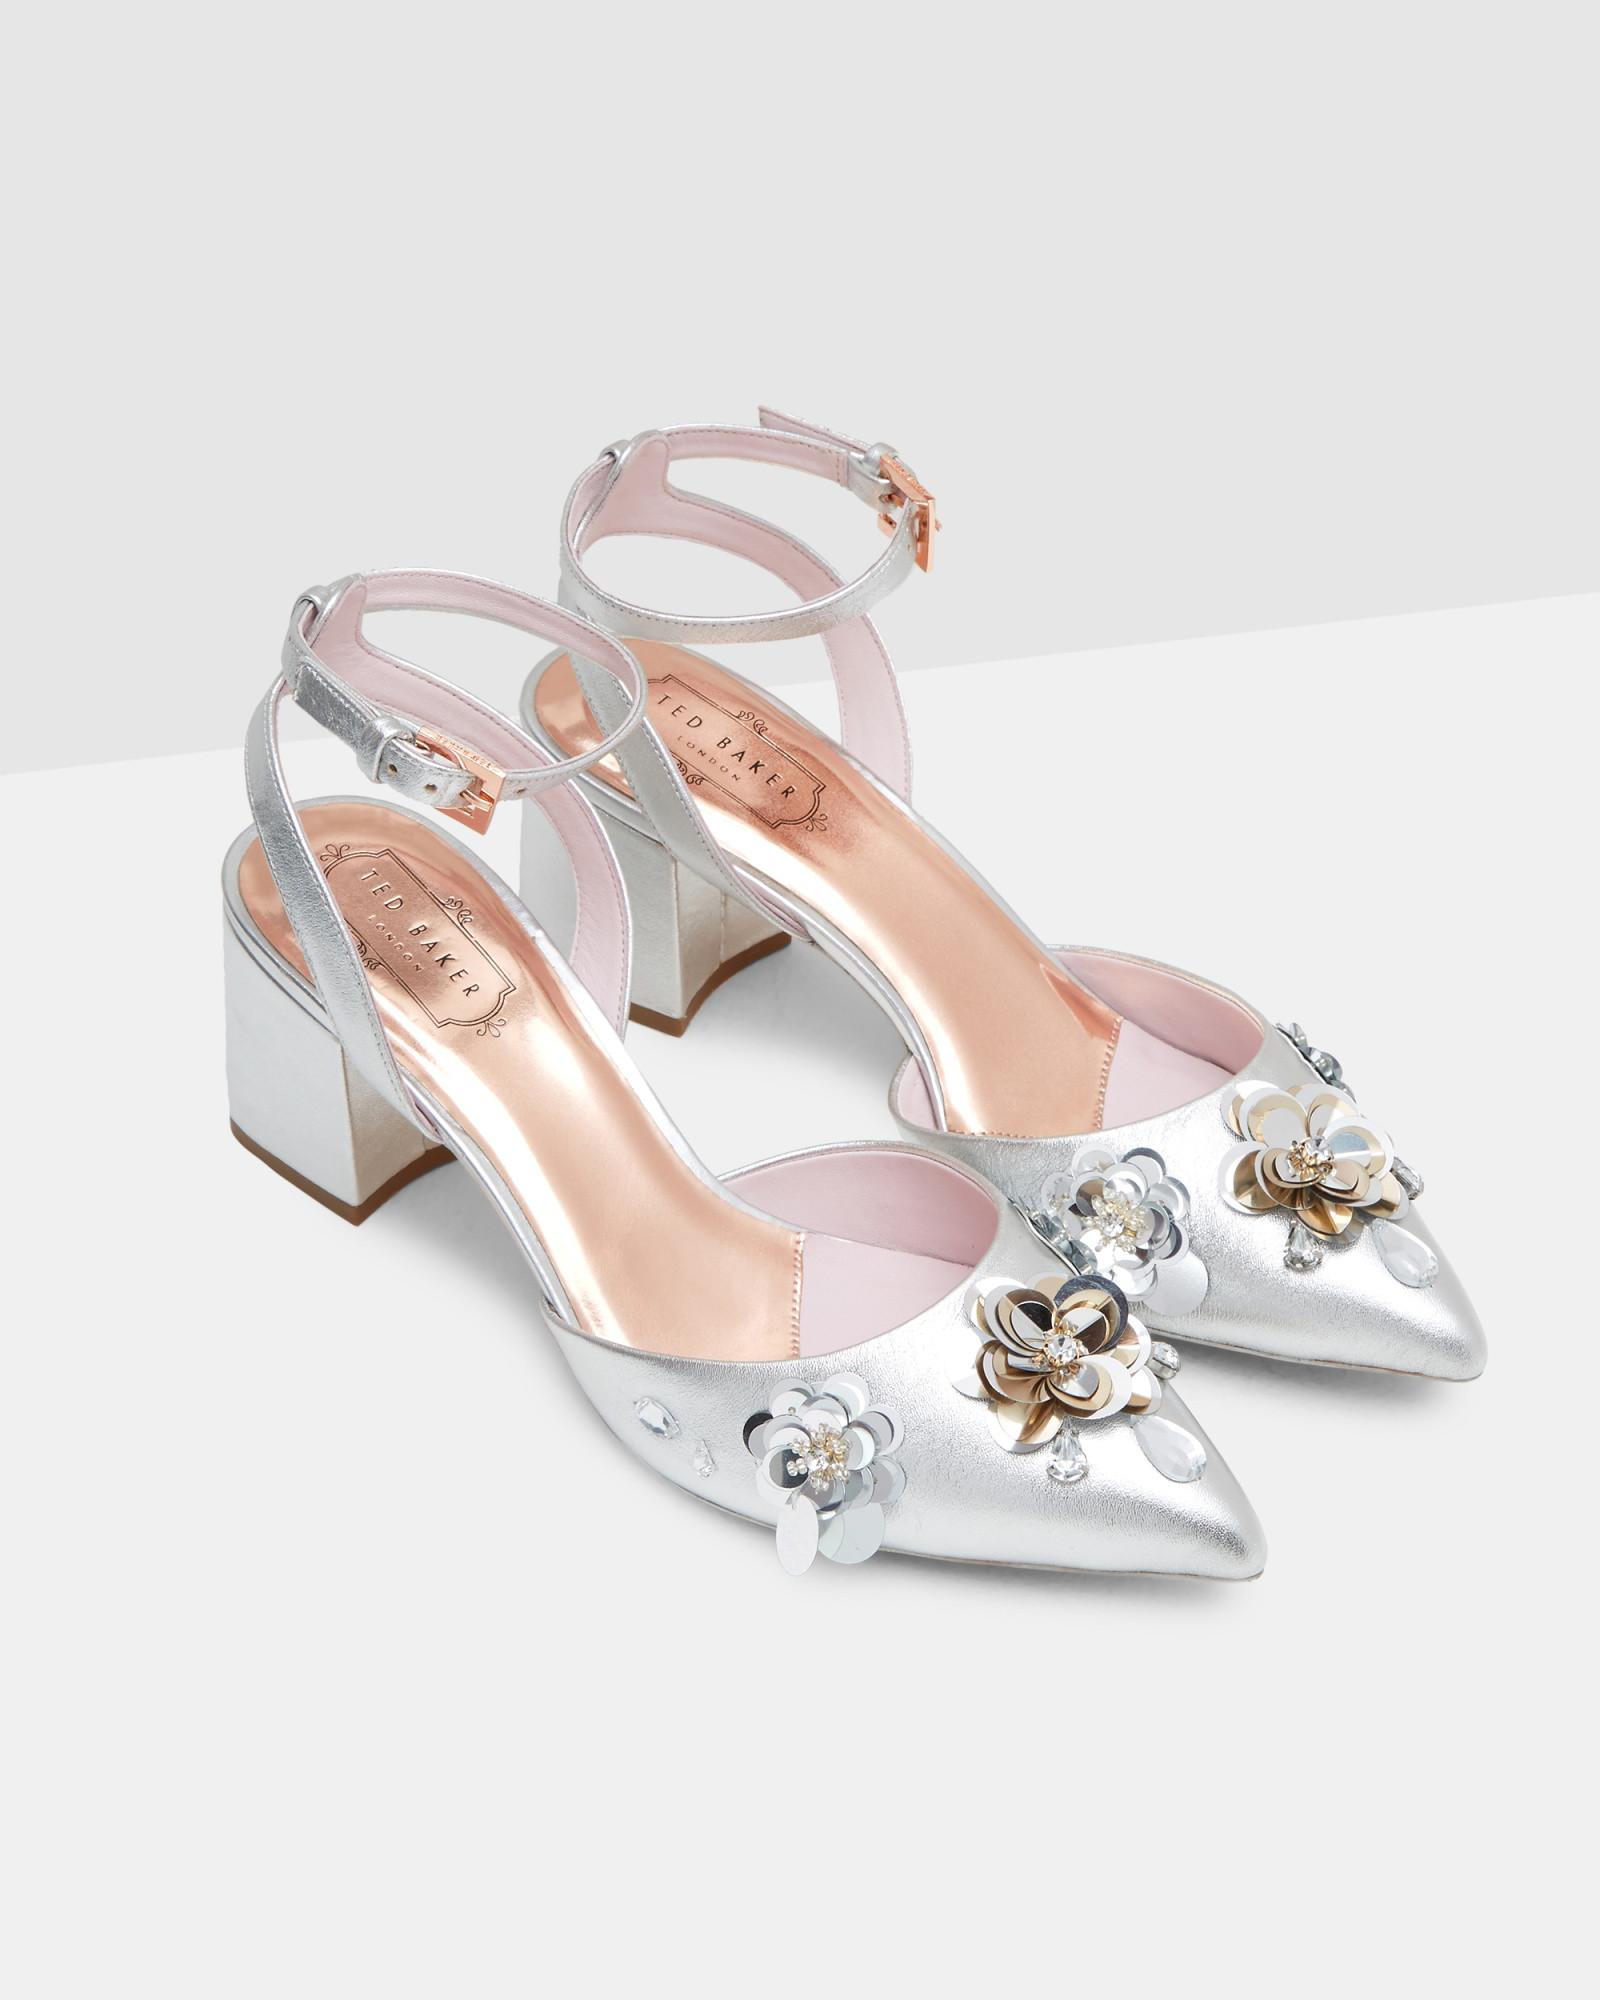 c4521cf6e93 Lyst - Ted Baker Floral Embellished Leather Sandals in Metallic